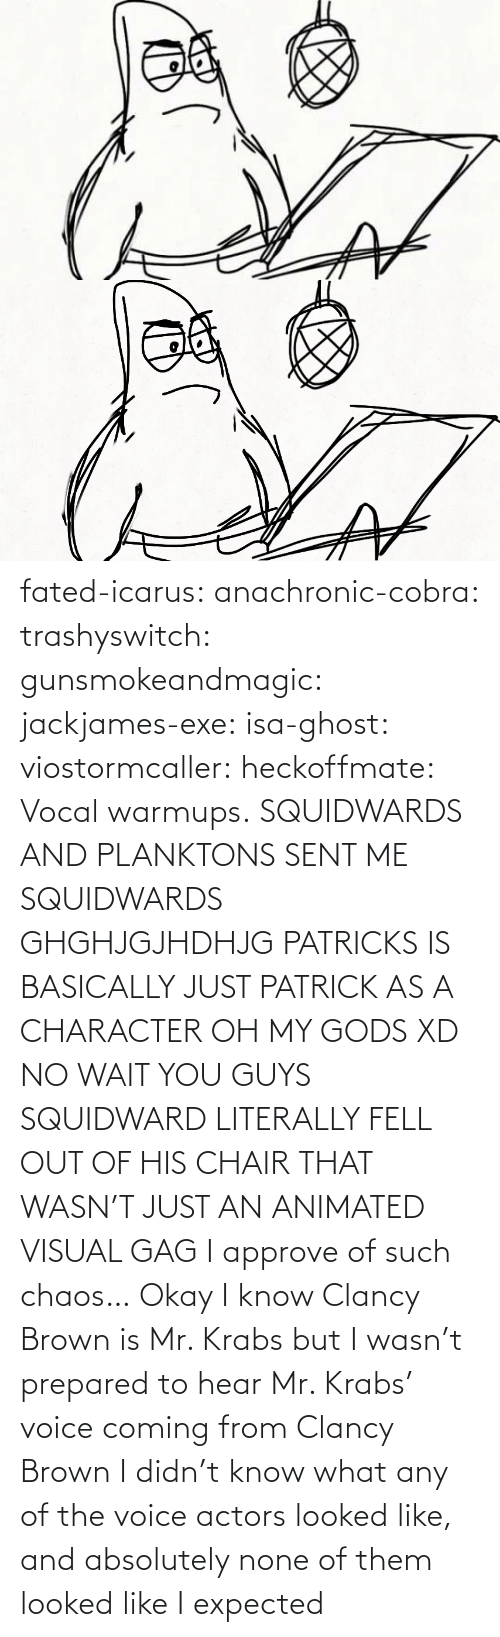 amp: fated-icarus:  anachronic-cobra: trashyswitch:  gunsmokeandmagic:  jackjames-exe:  isa-ghost:   viostormcaller:  heckoffmate: Vocal warmups. SQUIDWARDS AND PLANKTONS SENT ME  SQUIDWARDS GHGHJGJHDHJG   PATRICKS IS BASICALLY JUST PATRICK AS A CHARACTER OH MY GODS XD   NO WAIT YOU GUYS SQUIDWARD LITERALLY FELL OUT OF HIS CHAIR THAT WASN'T JUST AN ANIMATED VISUAL GAG    I approve of such chaos…    Okay I know Clancy Brown is Mr. Krabs but I wasn't prepared to hear Mr. Krabs' voice coming from Clancy Brown    I didn't know what any of the voice actors looked like, and absolutely none of them looked like I expected